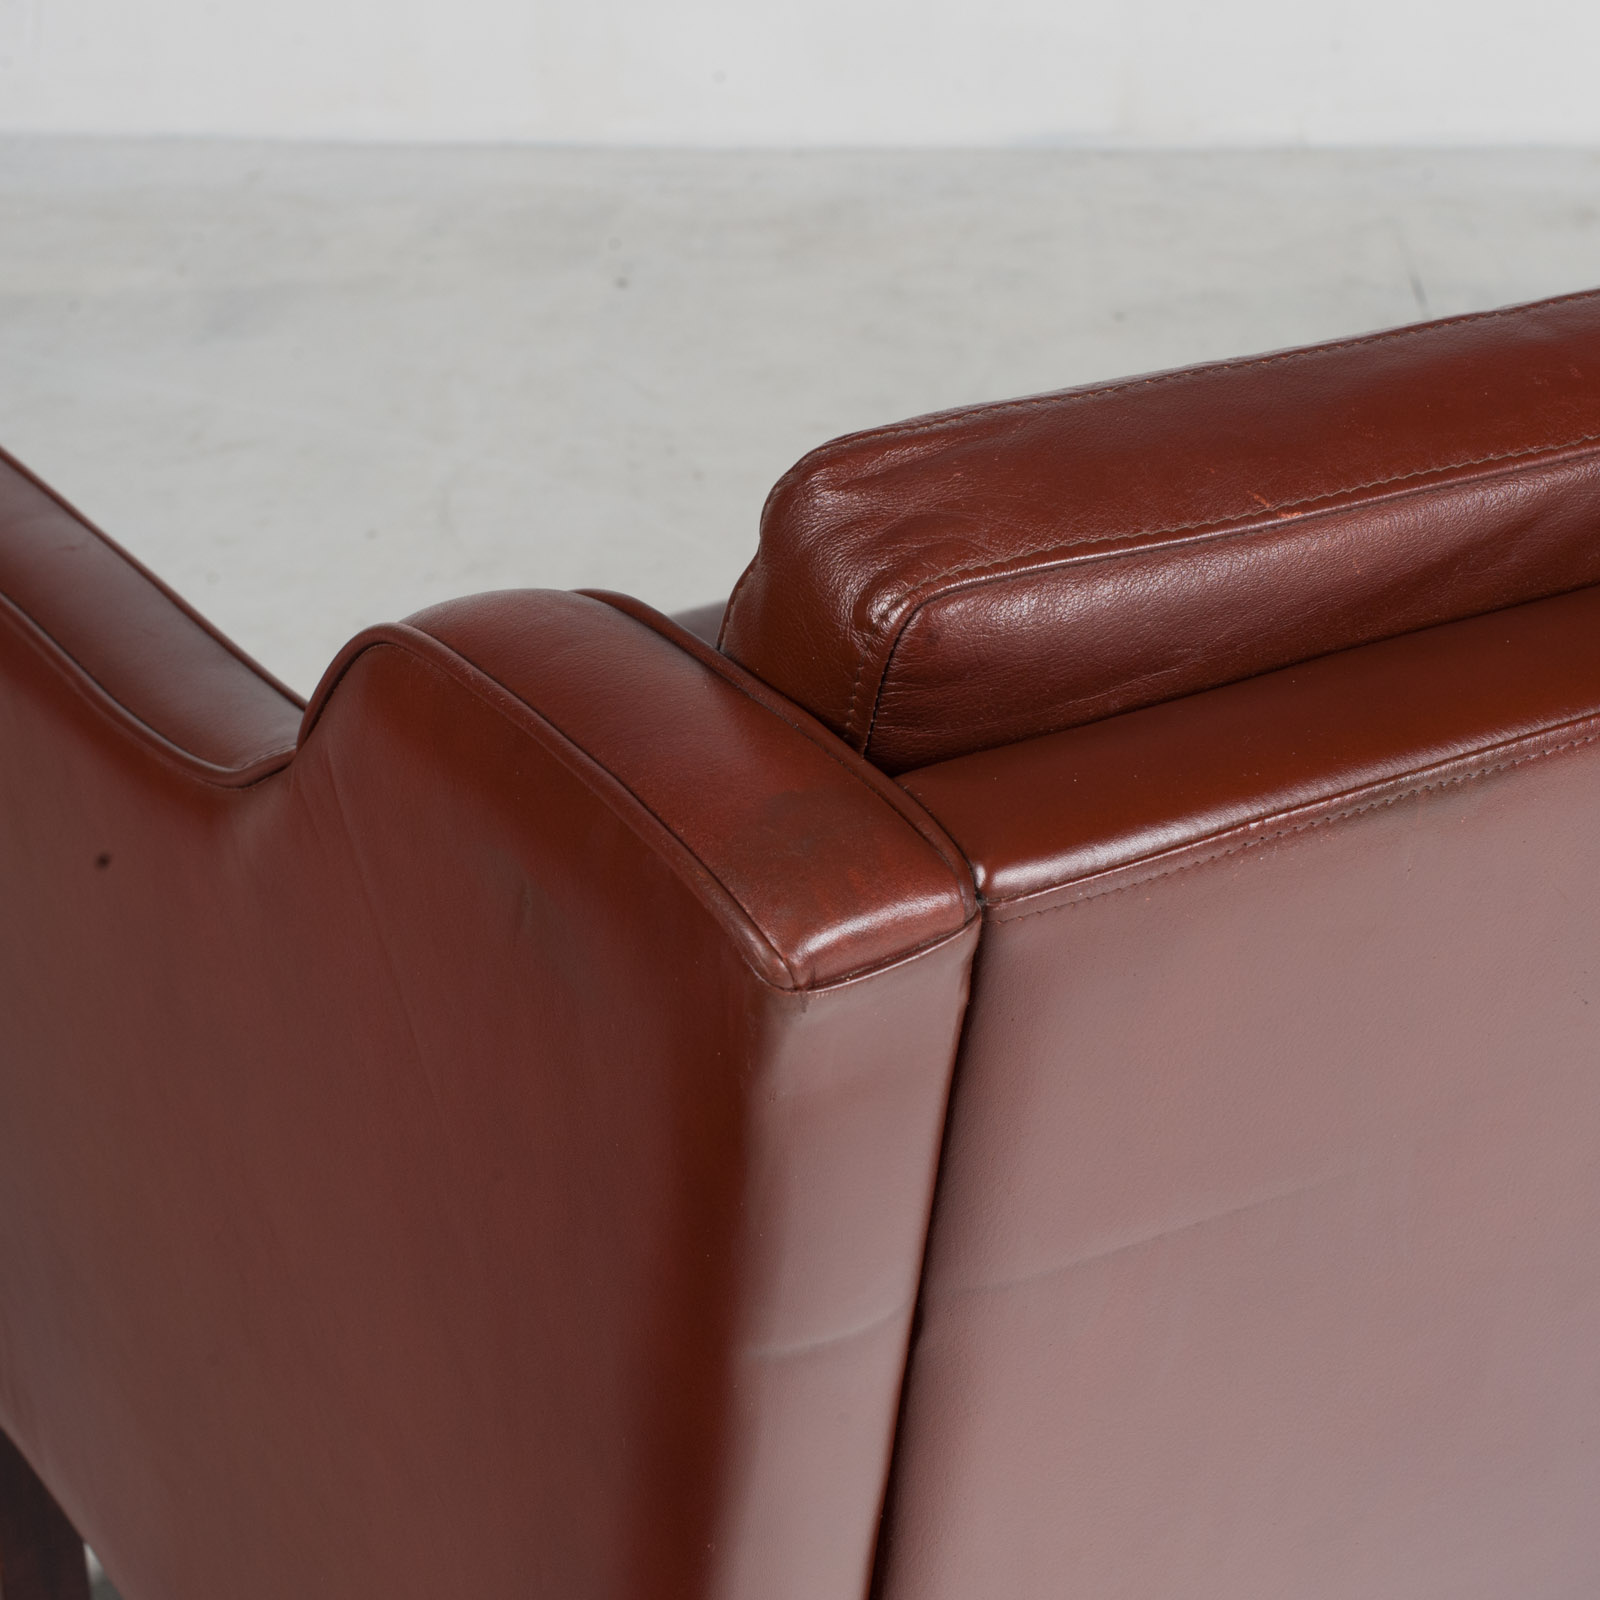 3 Seater Sofa In Tan Leather 1960s Denmark17